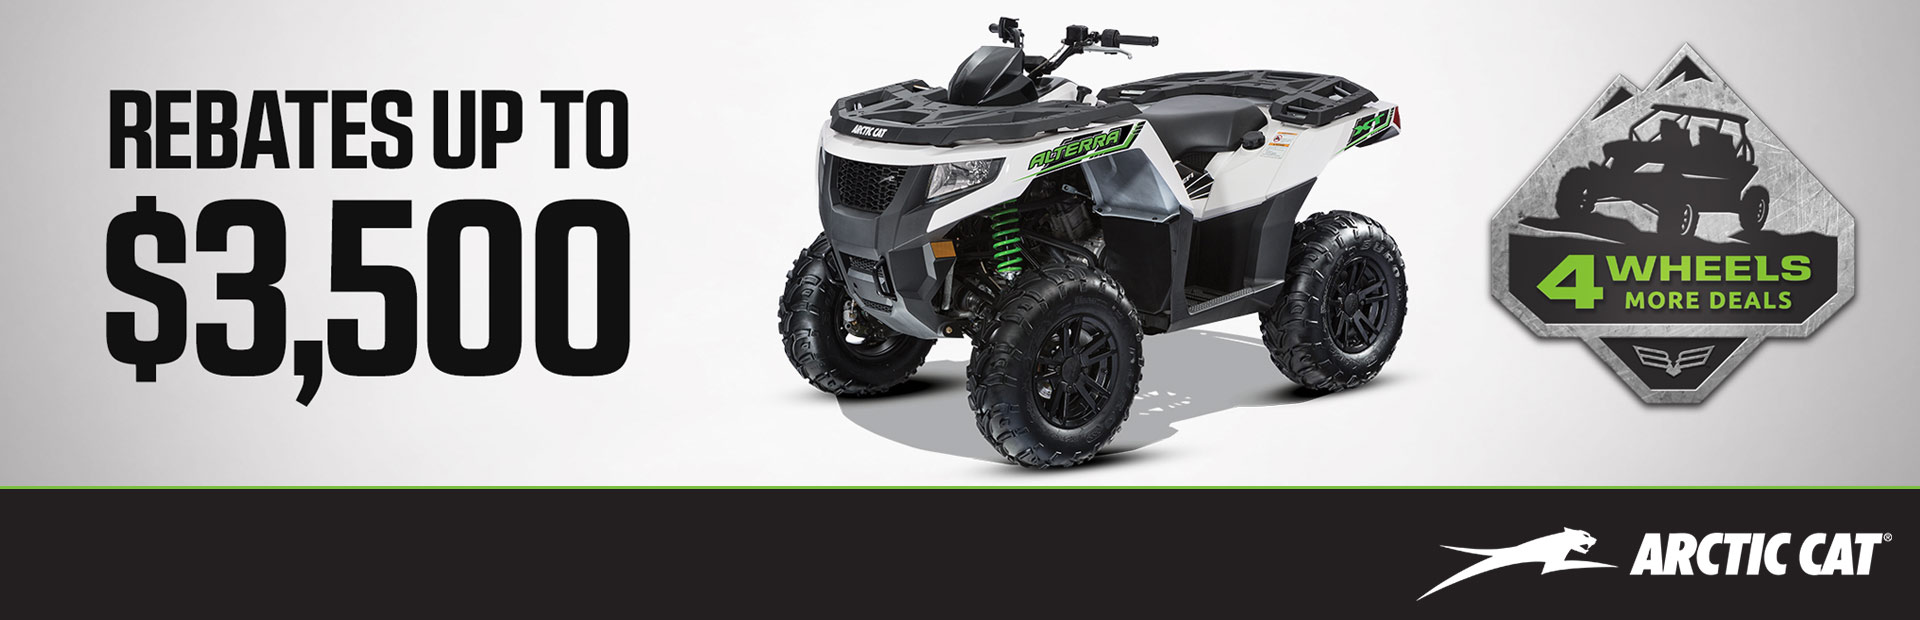 Arctic Cat: 4 Wheels More Deals Sales Event - ATVs